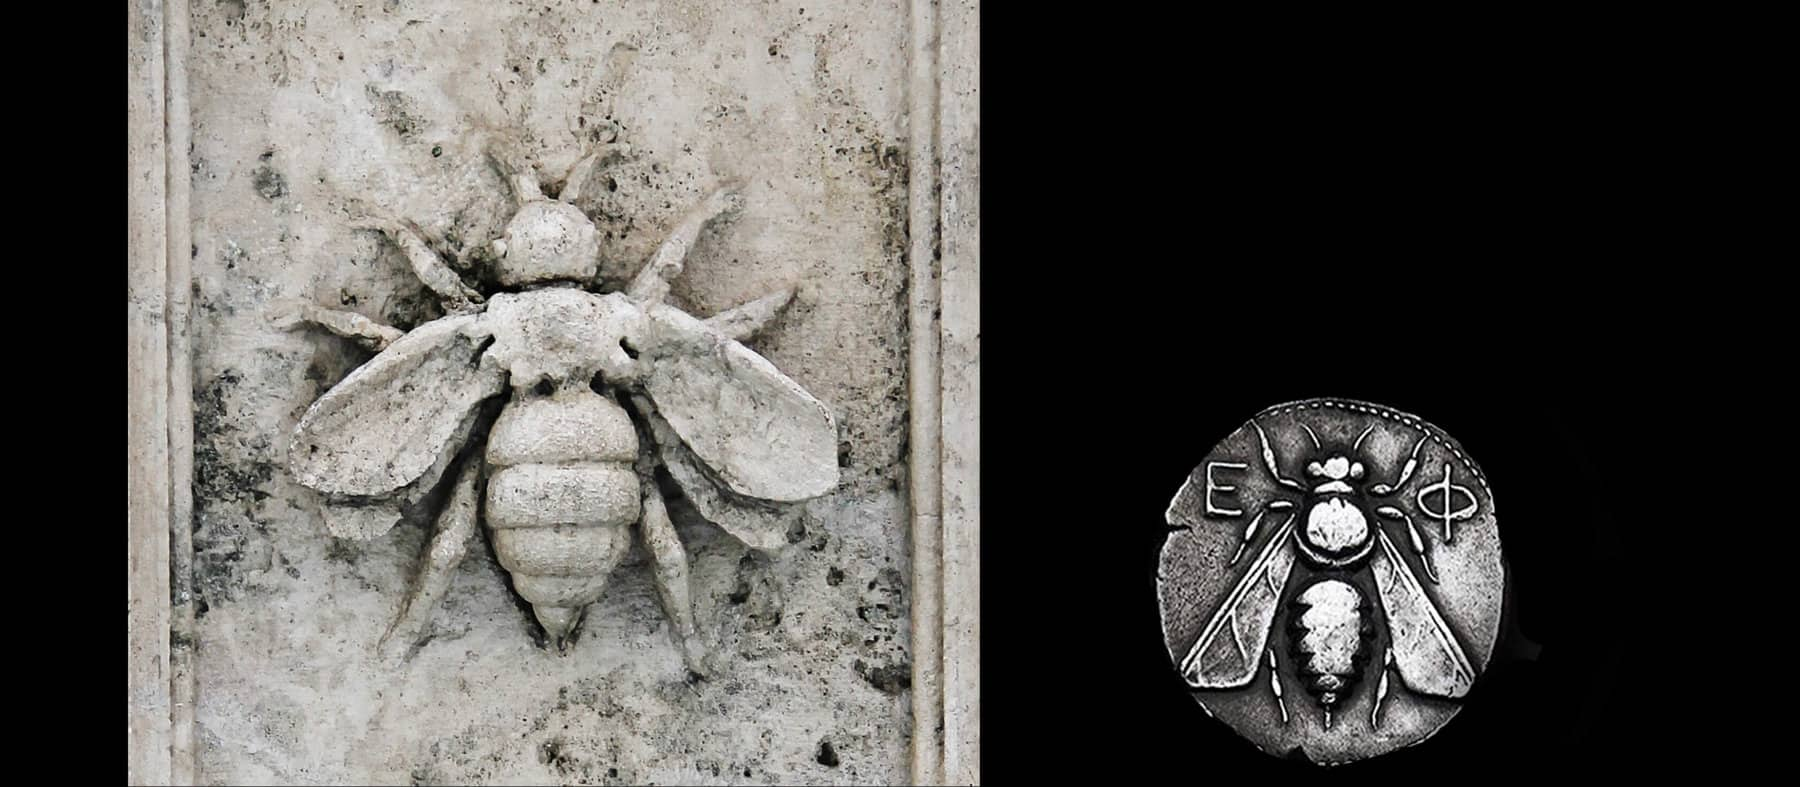 A photo collage shows two color images in a row. On the left is a close-up of a bee carved into a stone frieze. On the right is an antique silver coin depicting a bee.